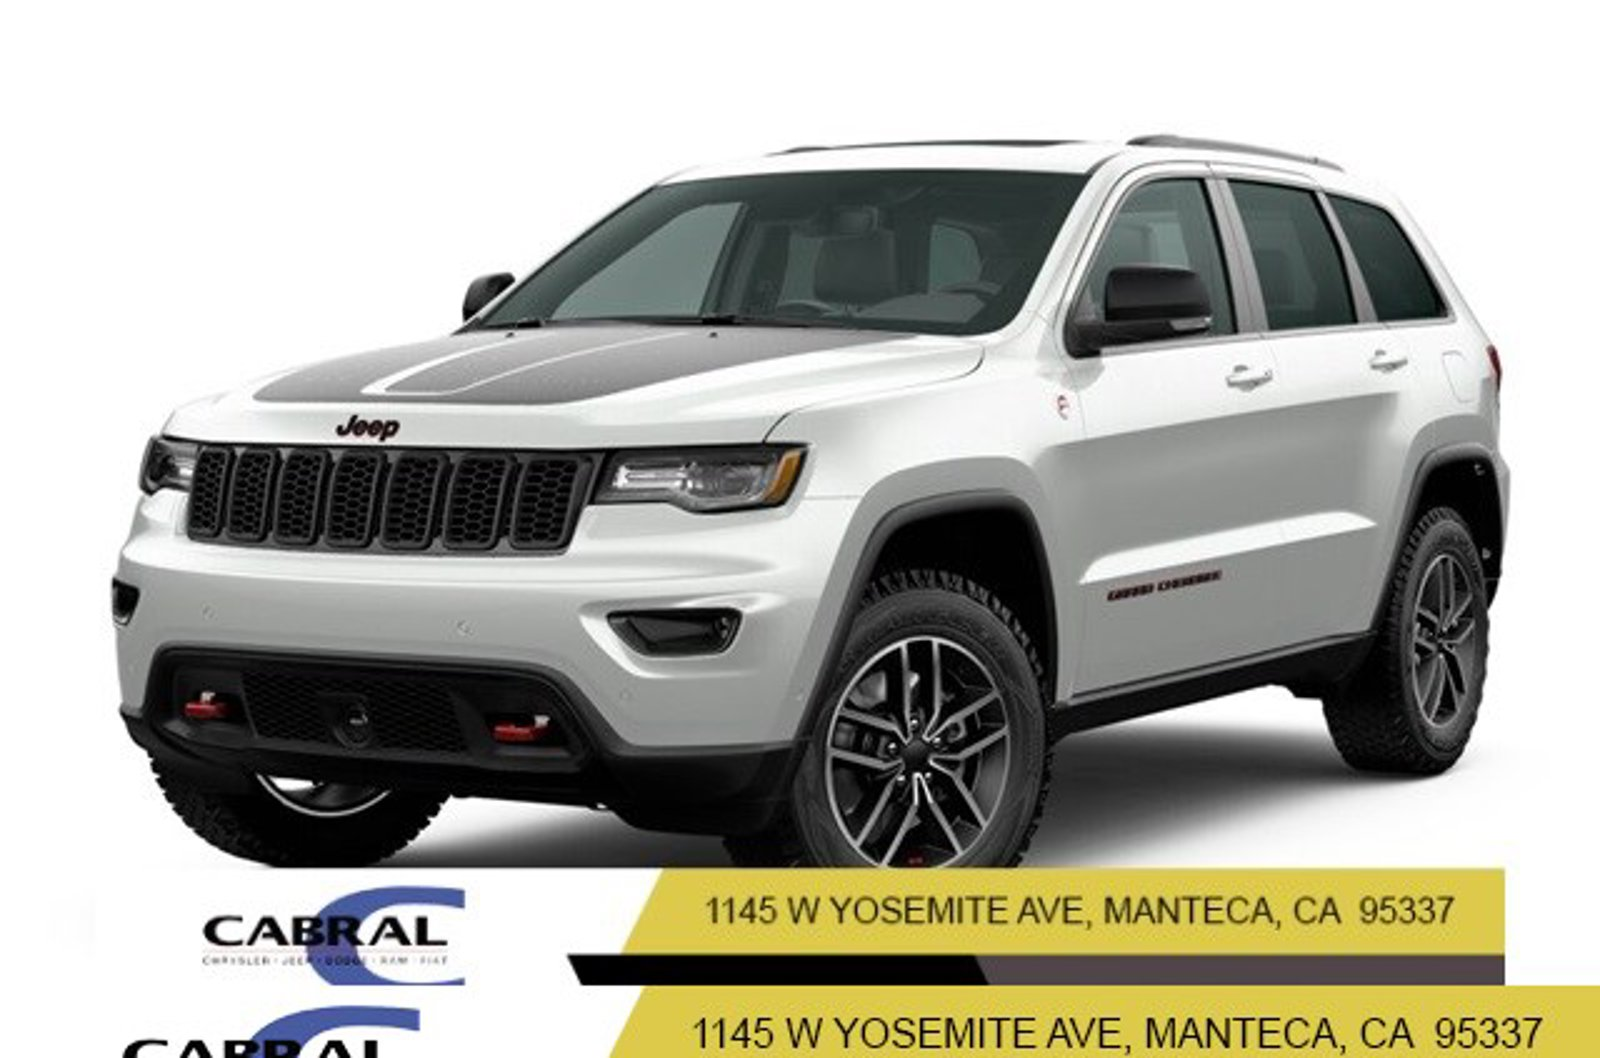 2020 Jeep Grand Cherokee Trailhawk Trailhawk 4x4 Regular Unleaded V-8 5.7 L/345 [12]